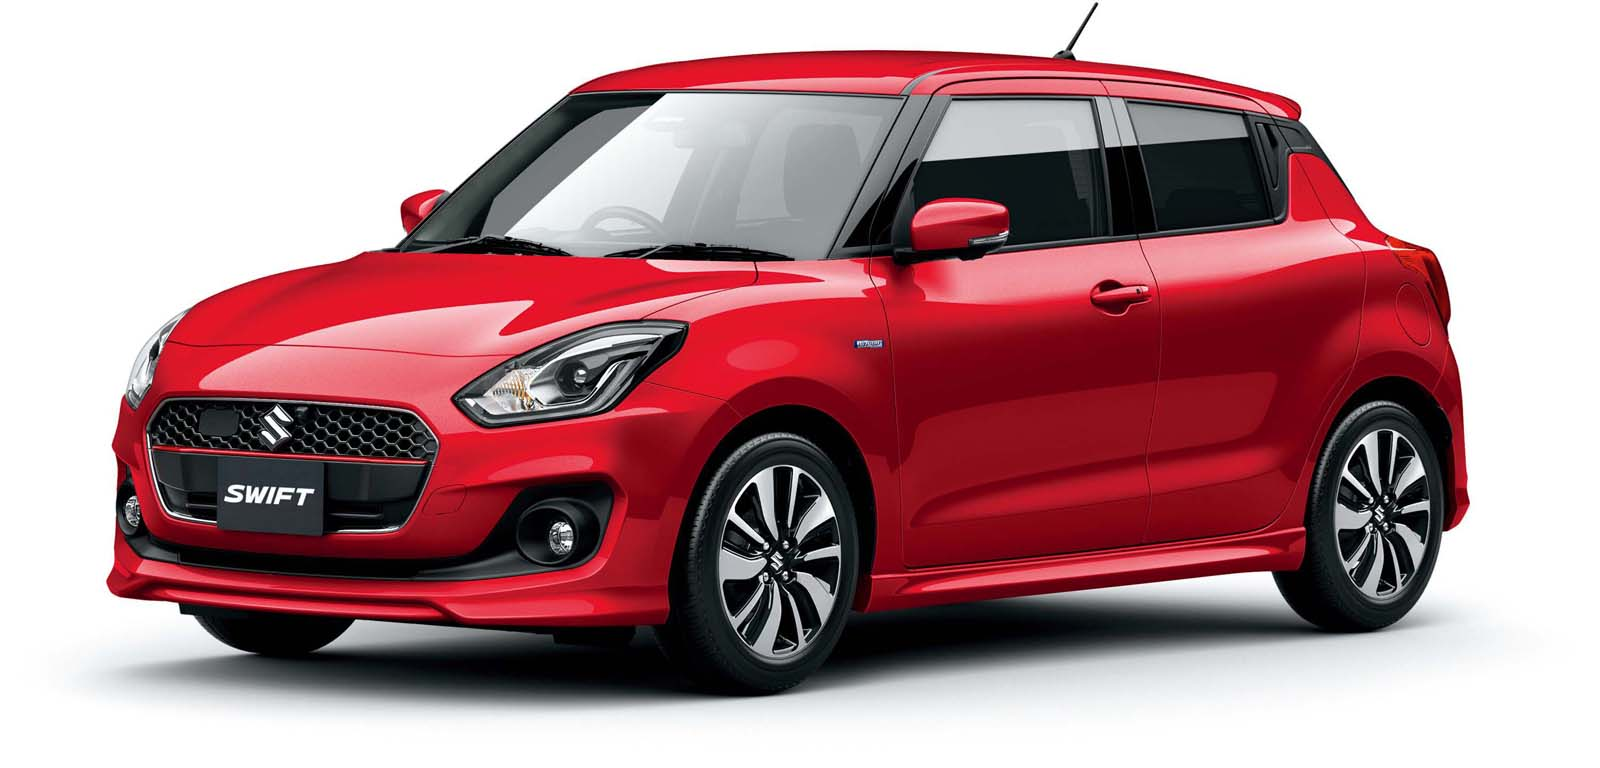 Suzuki Swift 2017 (17)